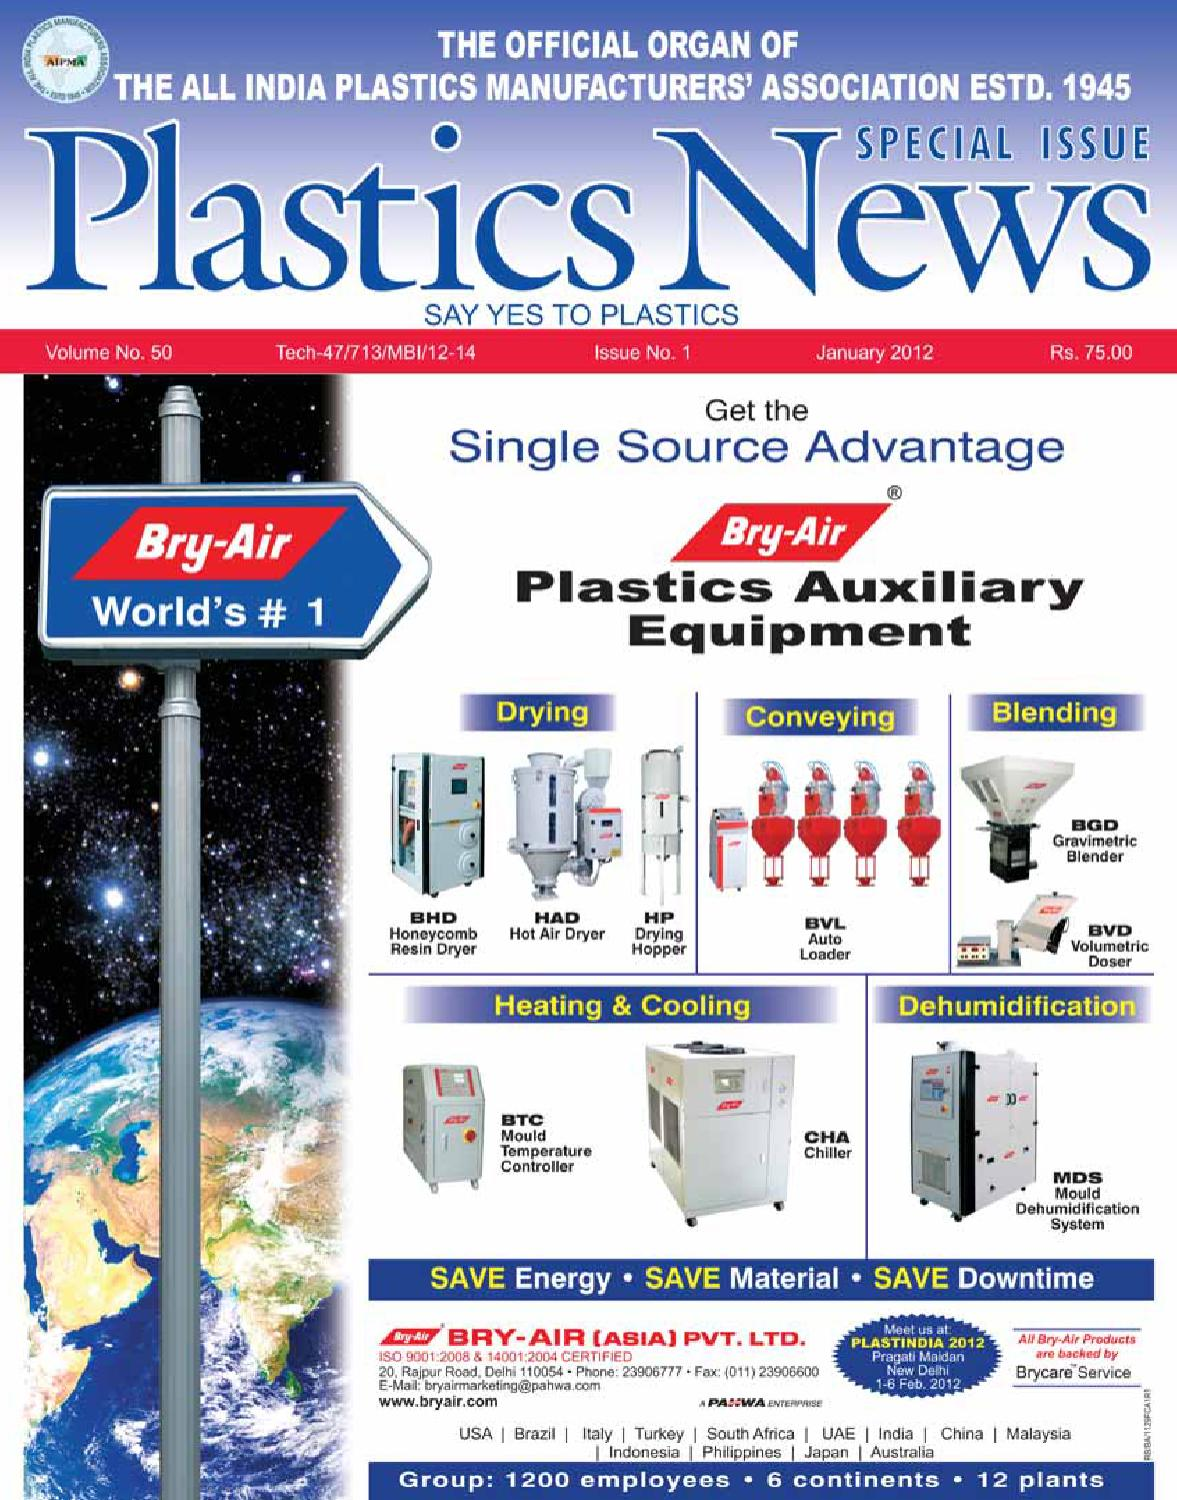 Plastics News January 2012 by Jayesh Rambhia - issuu